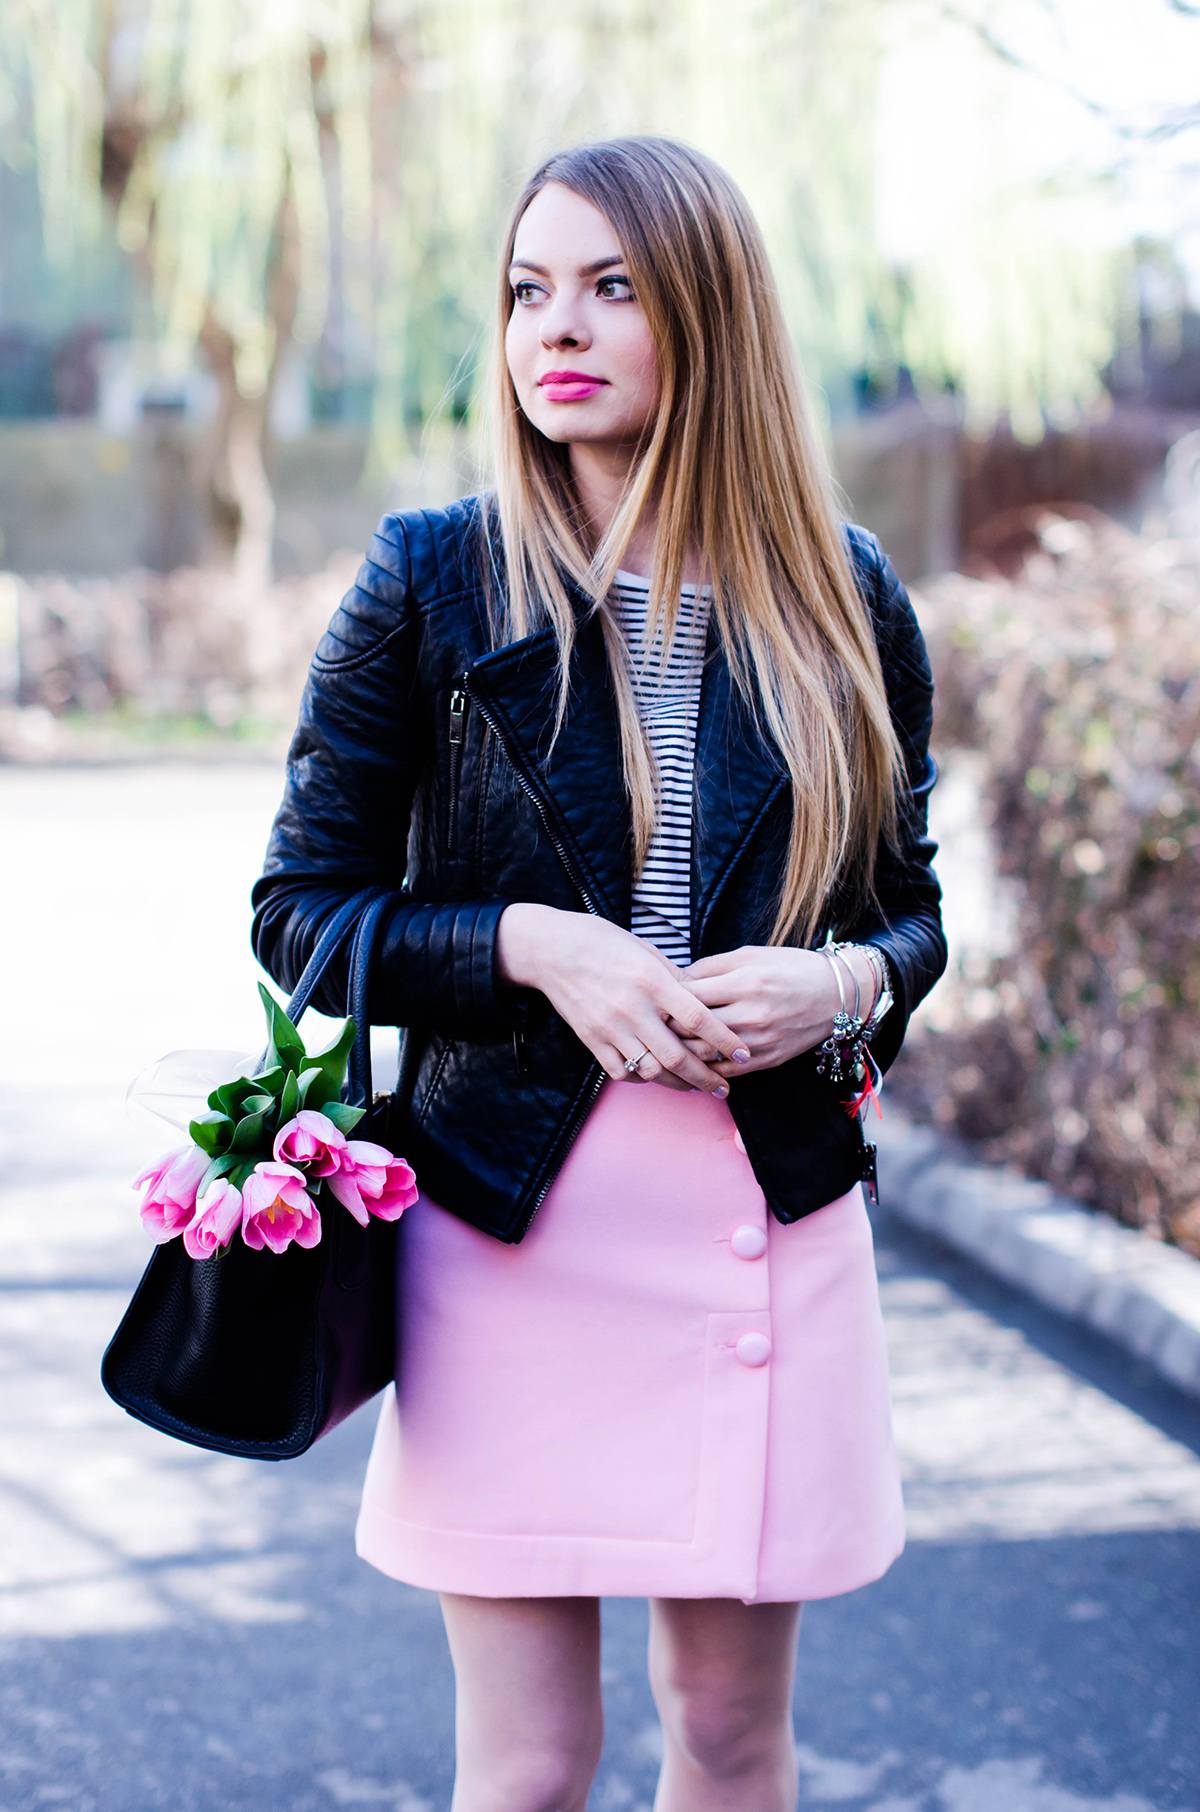 pink-a-line-skirt-adidas-stan-smith-leather-jacket-spring-outfit-pink-tulips (7)